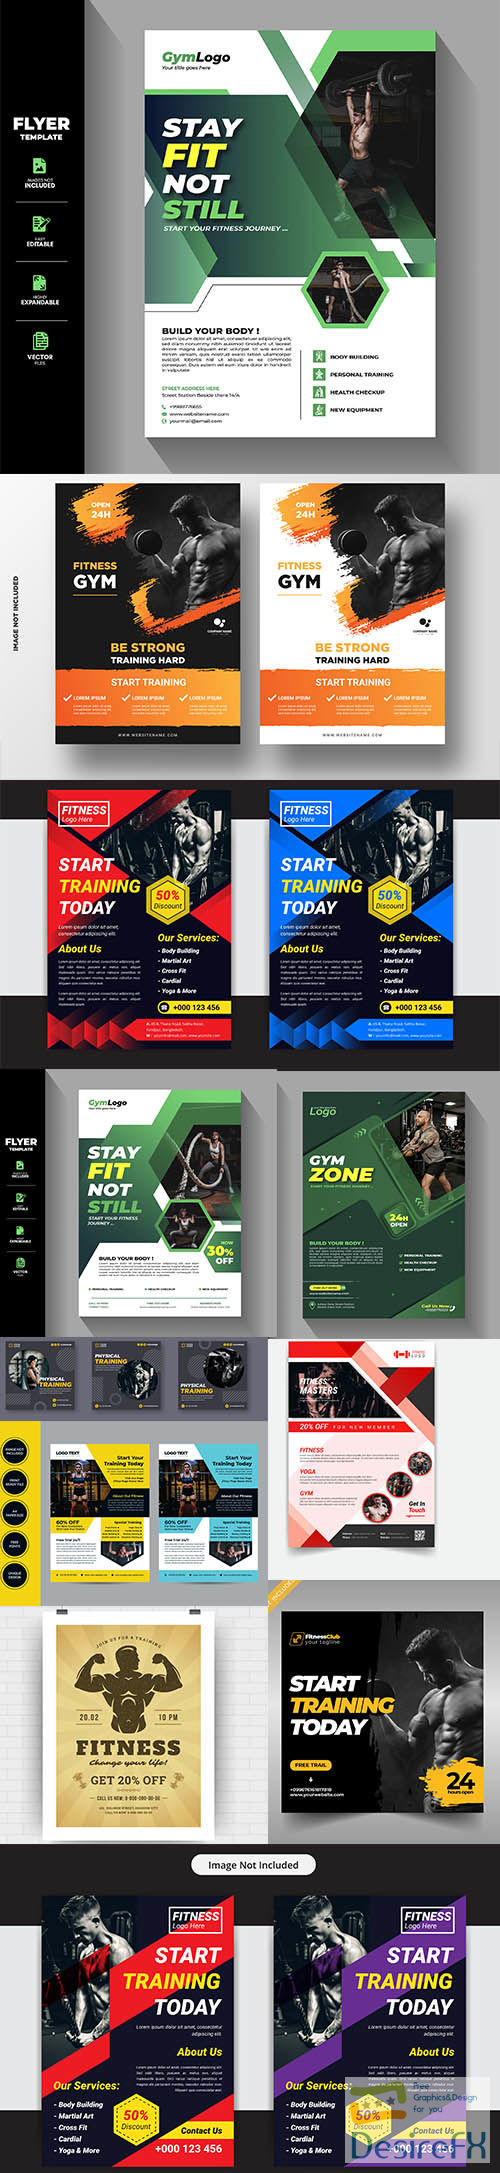 Gym and fitness flyer template collection Vol 2